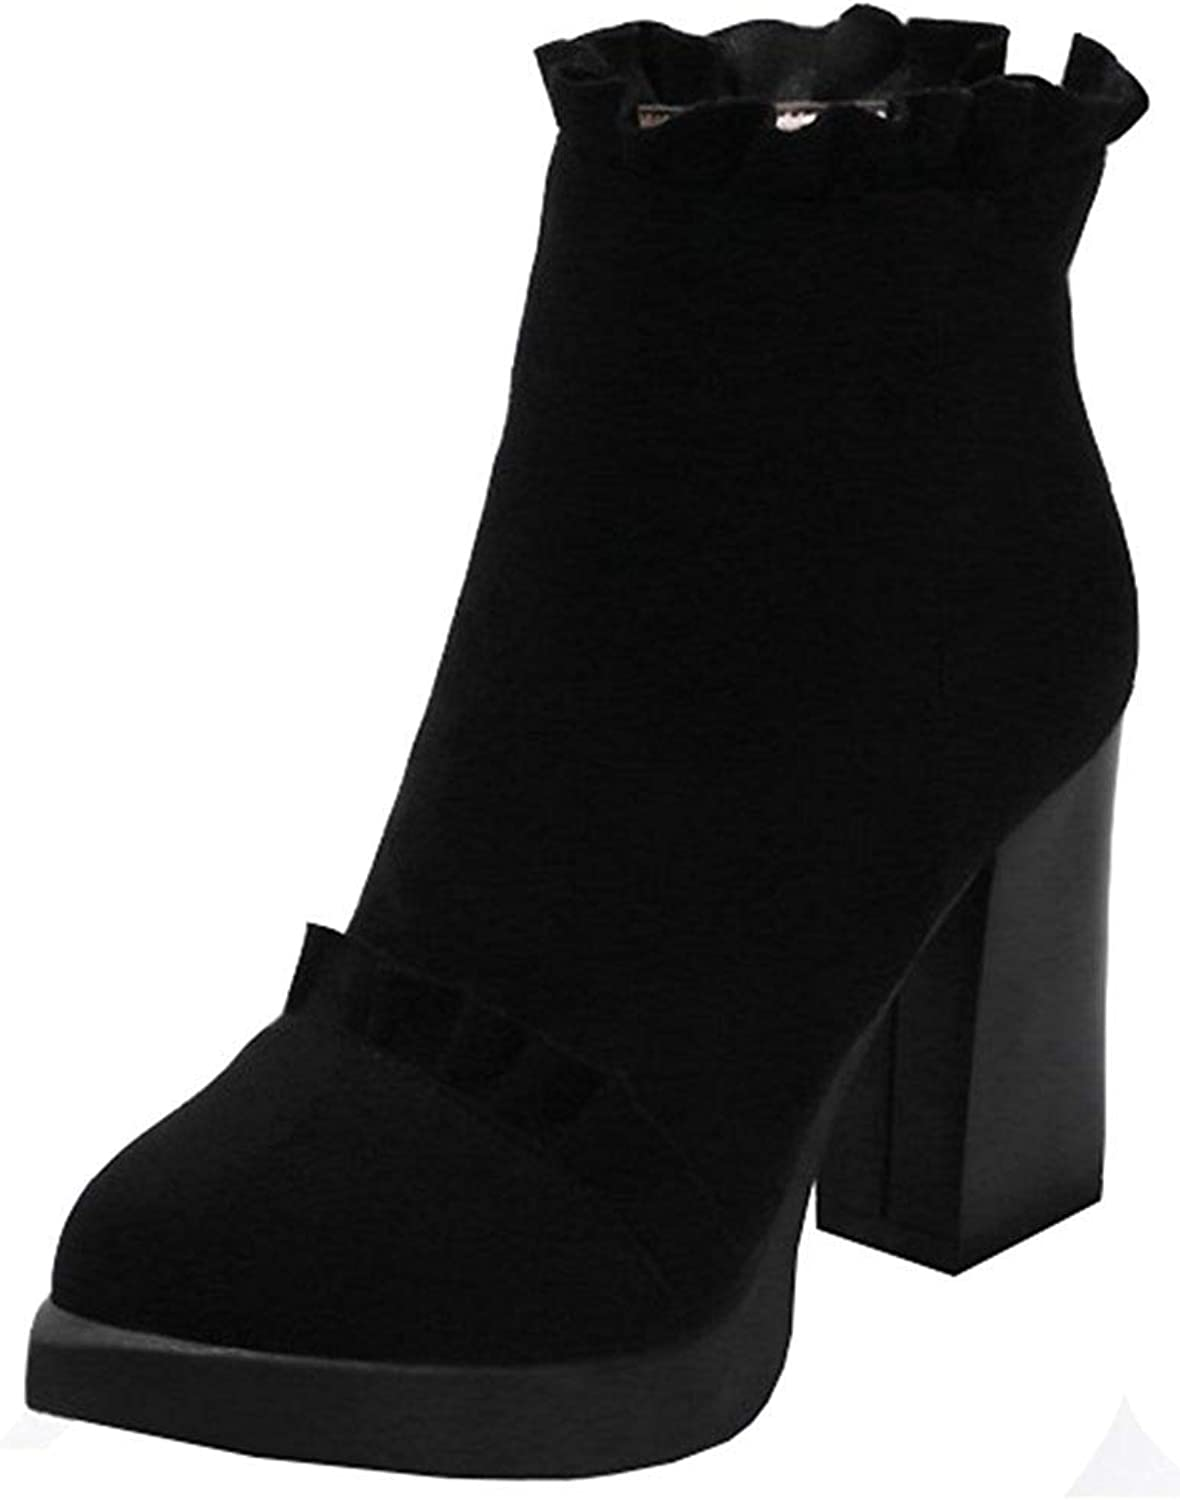 Ghssheh Women's Elegant Falbala Block High Heel Platform Ankle Booties Pointed Toe Back Zipper Faux Suede Short Boots Black 4.5 M US